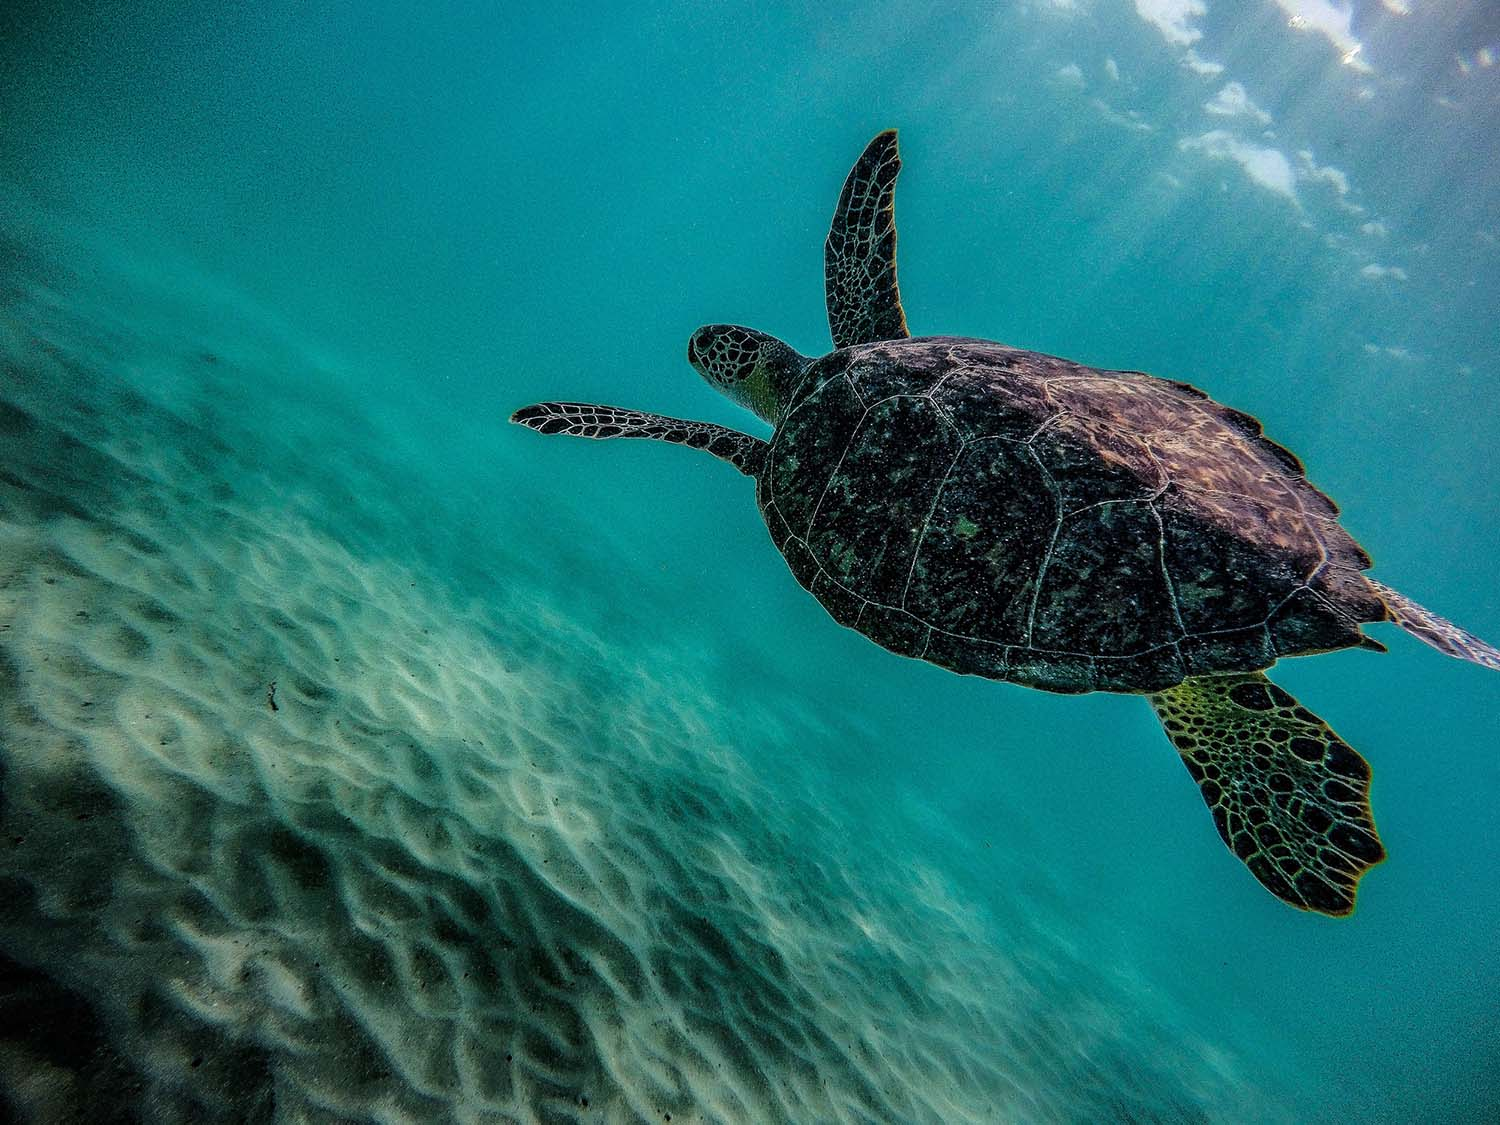 Sea turtle swimming amid rays of sun that stream through the water.